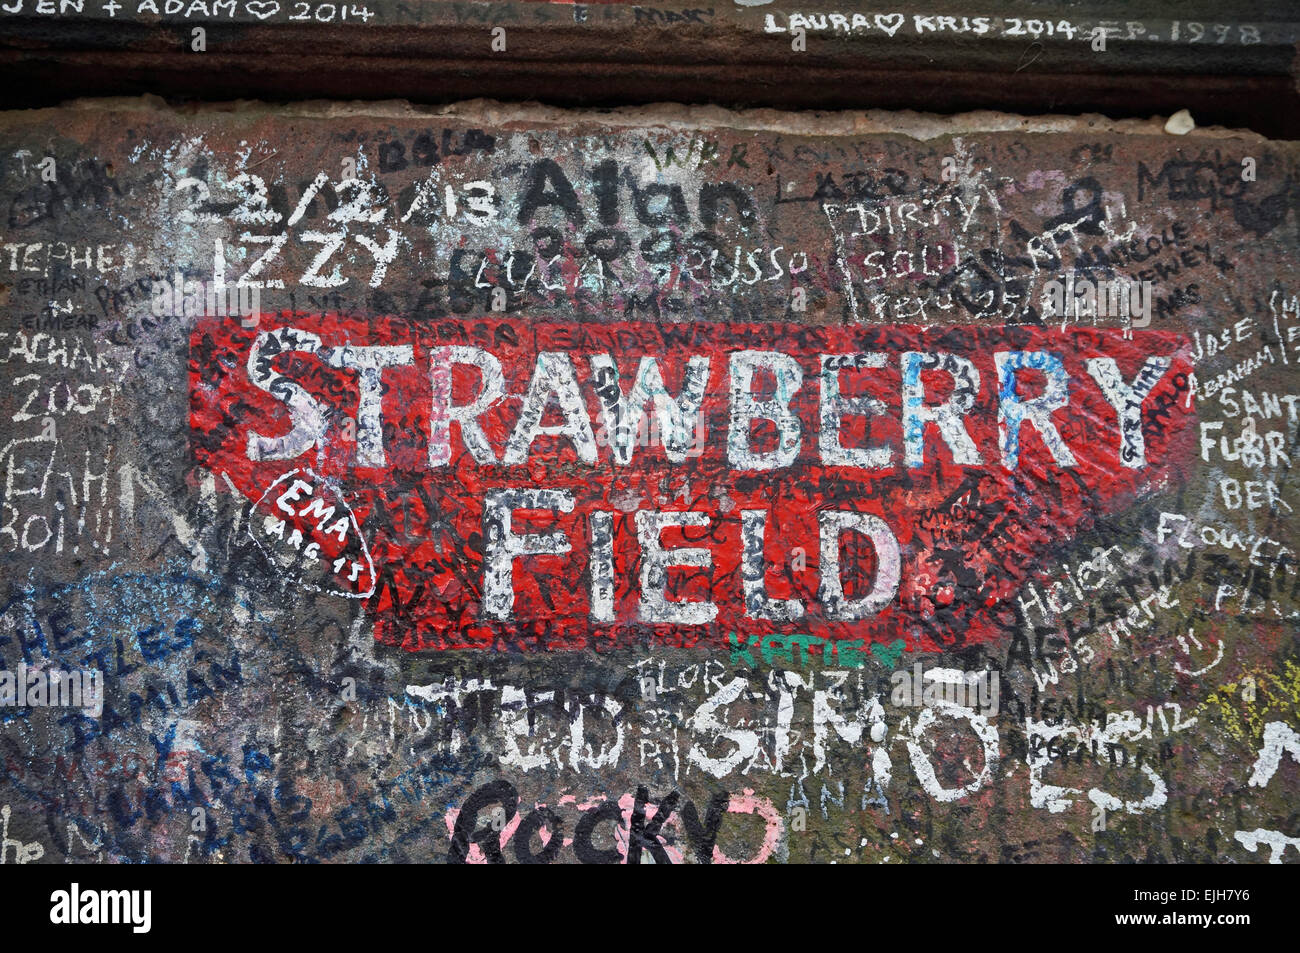 Strawberry Field Gatepost inLiverpool - Stock Image